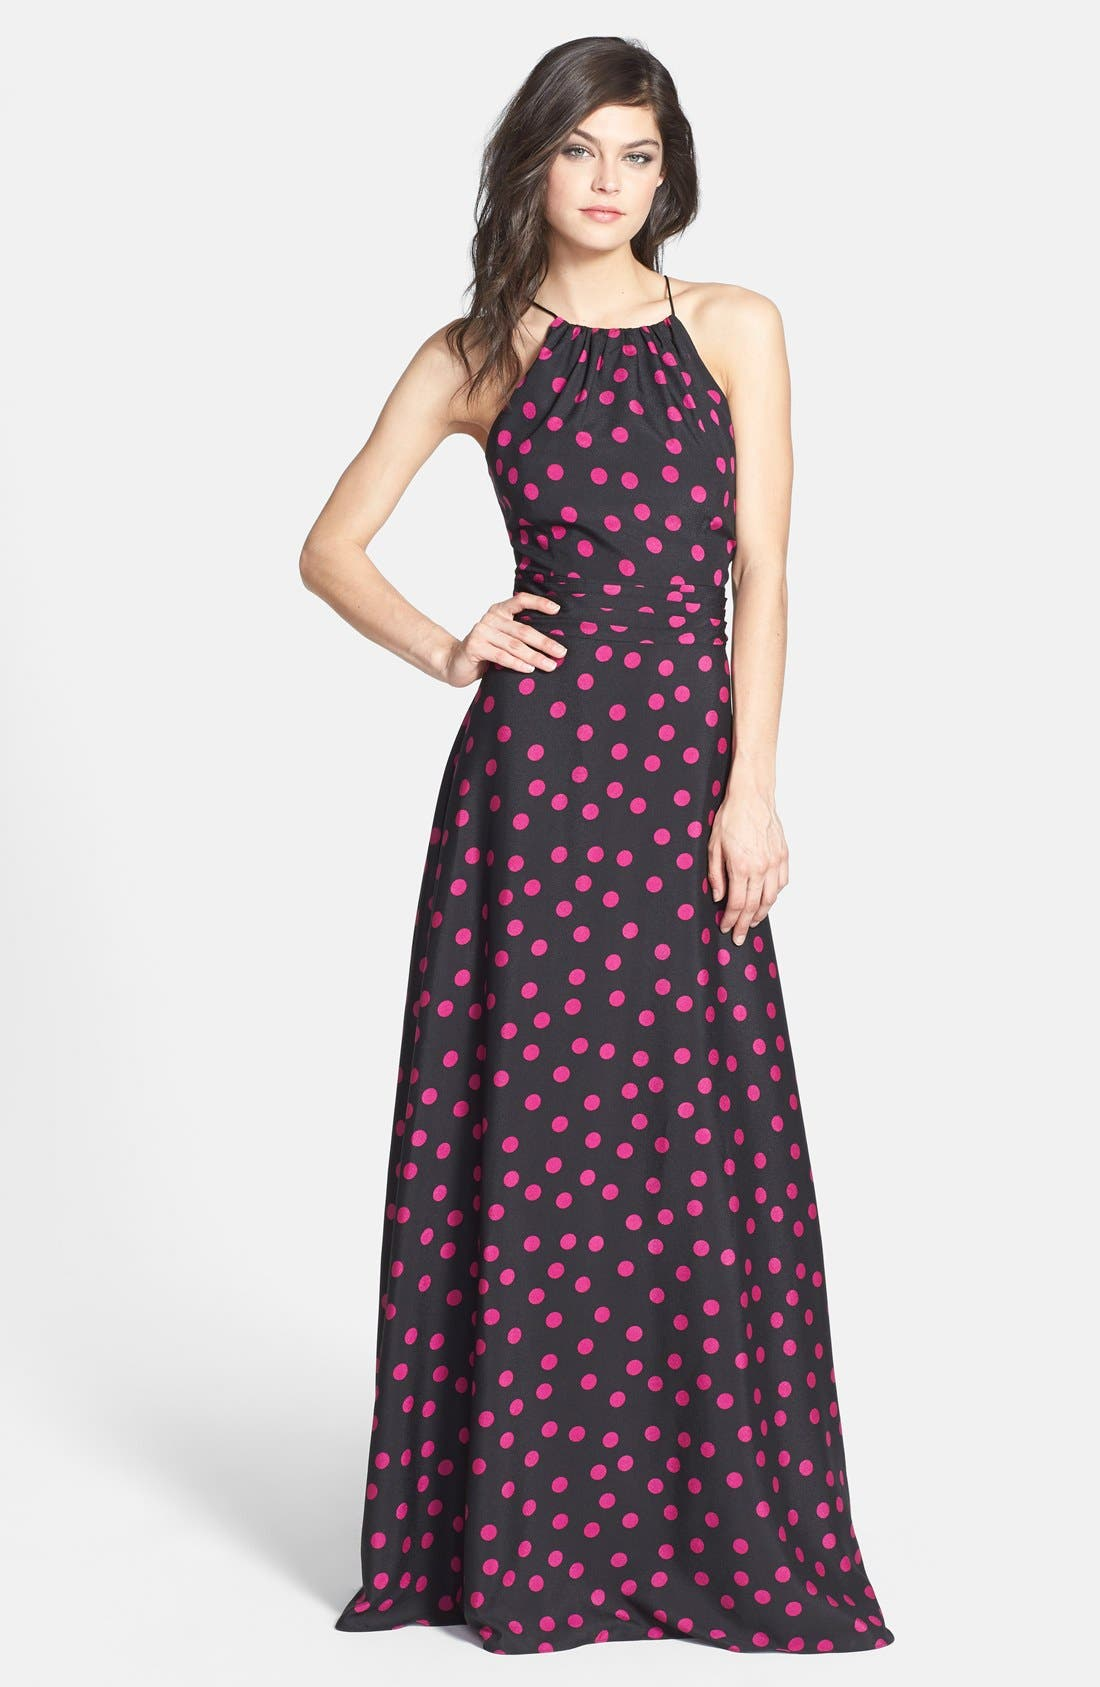 Alternate Image 1 Selected - Hailey by Adrianna Papell Polka Dot Halter Gown